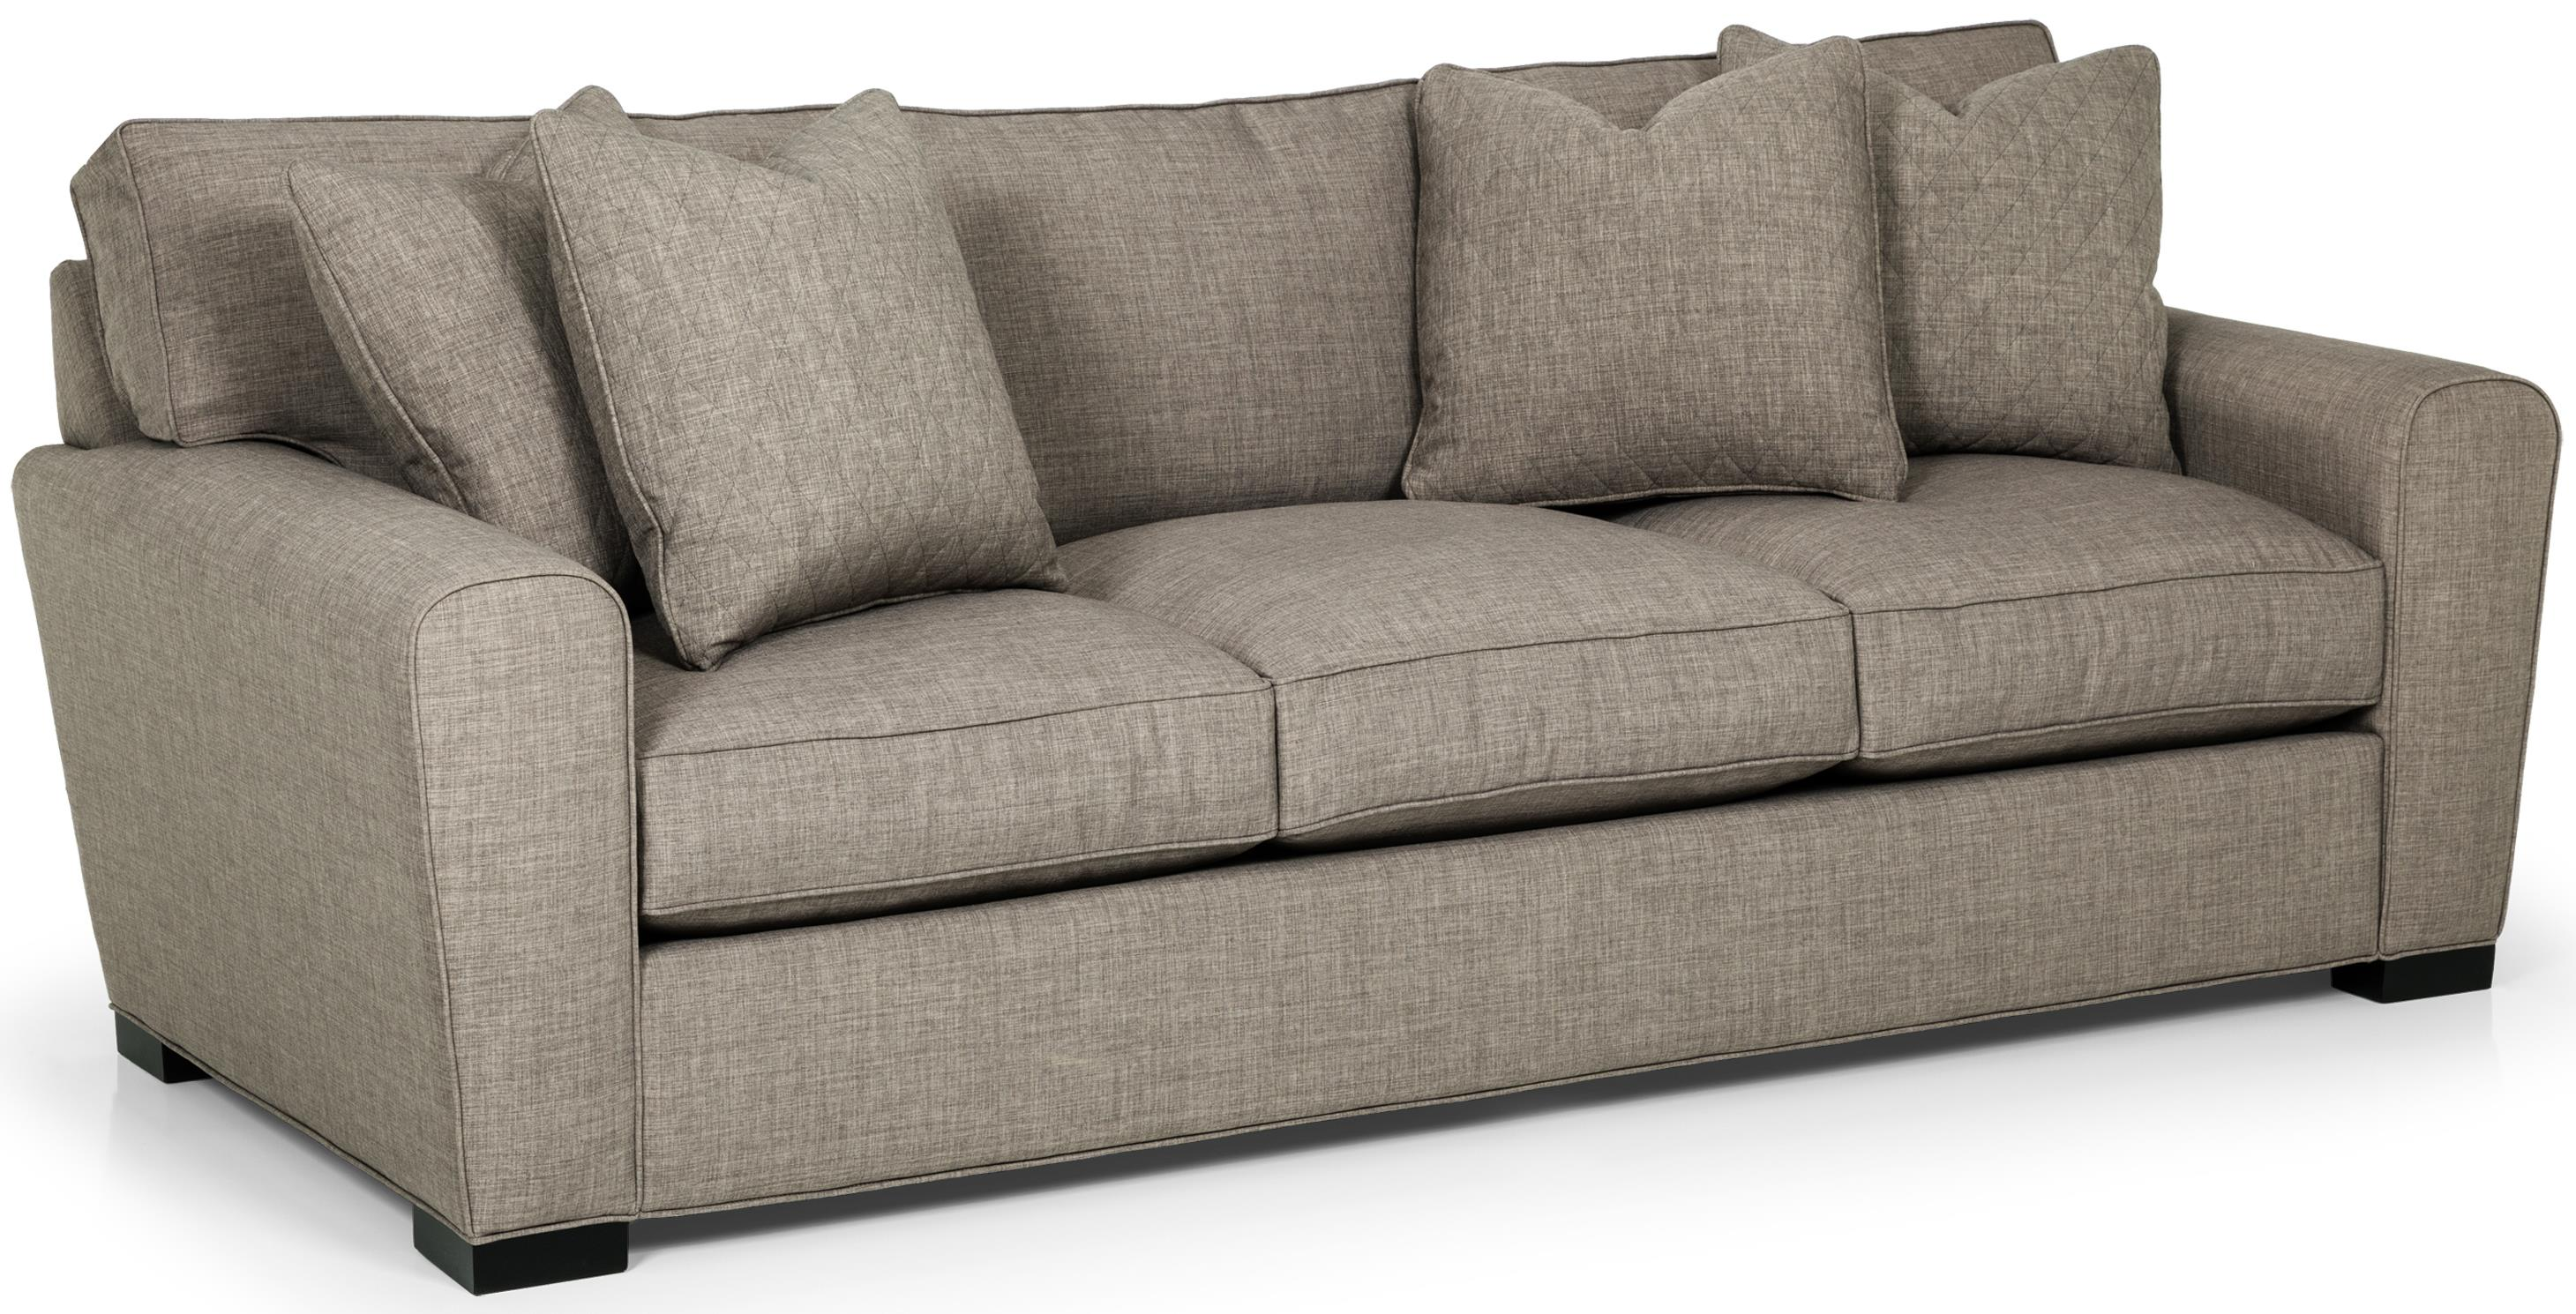 Stanton Furniture Sofa u2013 Refil Sofa